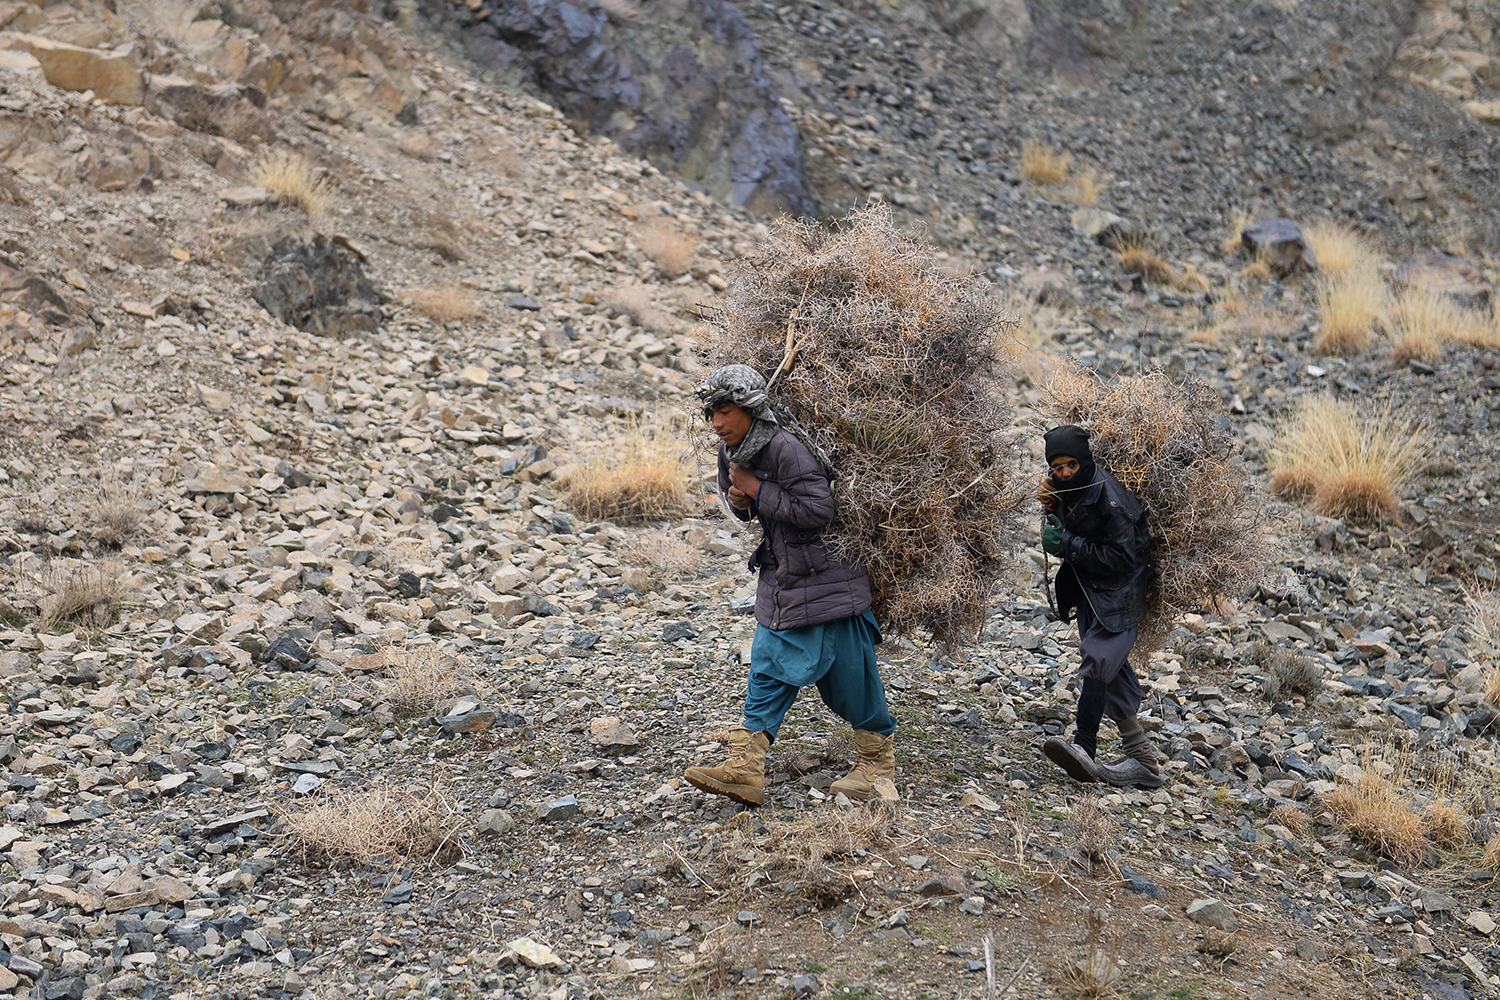 Youths carry firewood along a hillside on the outskirts of Herat, Afghanistan, on Jan. 20. HOSHANG HASHIMI/AFP via Getty Images